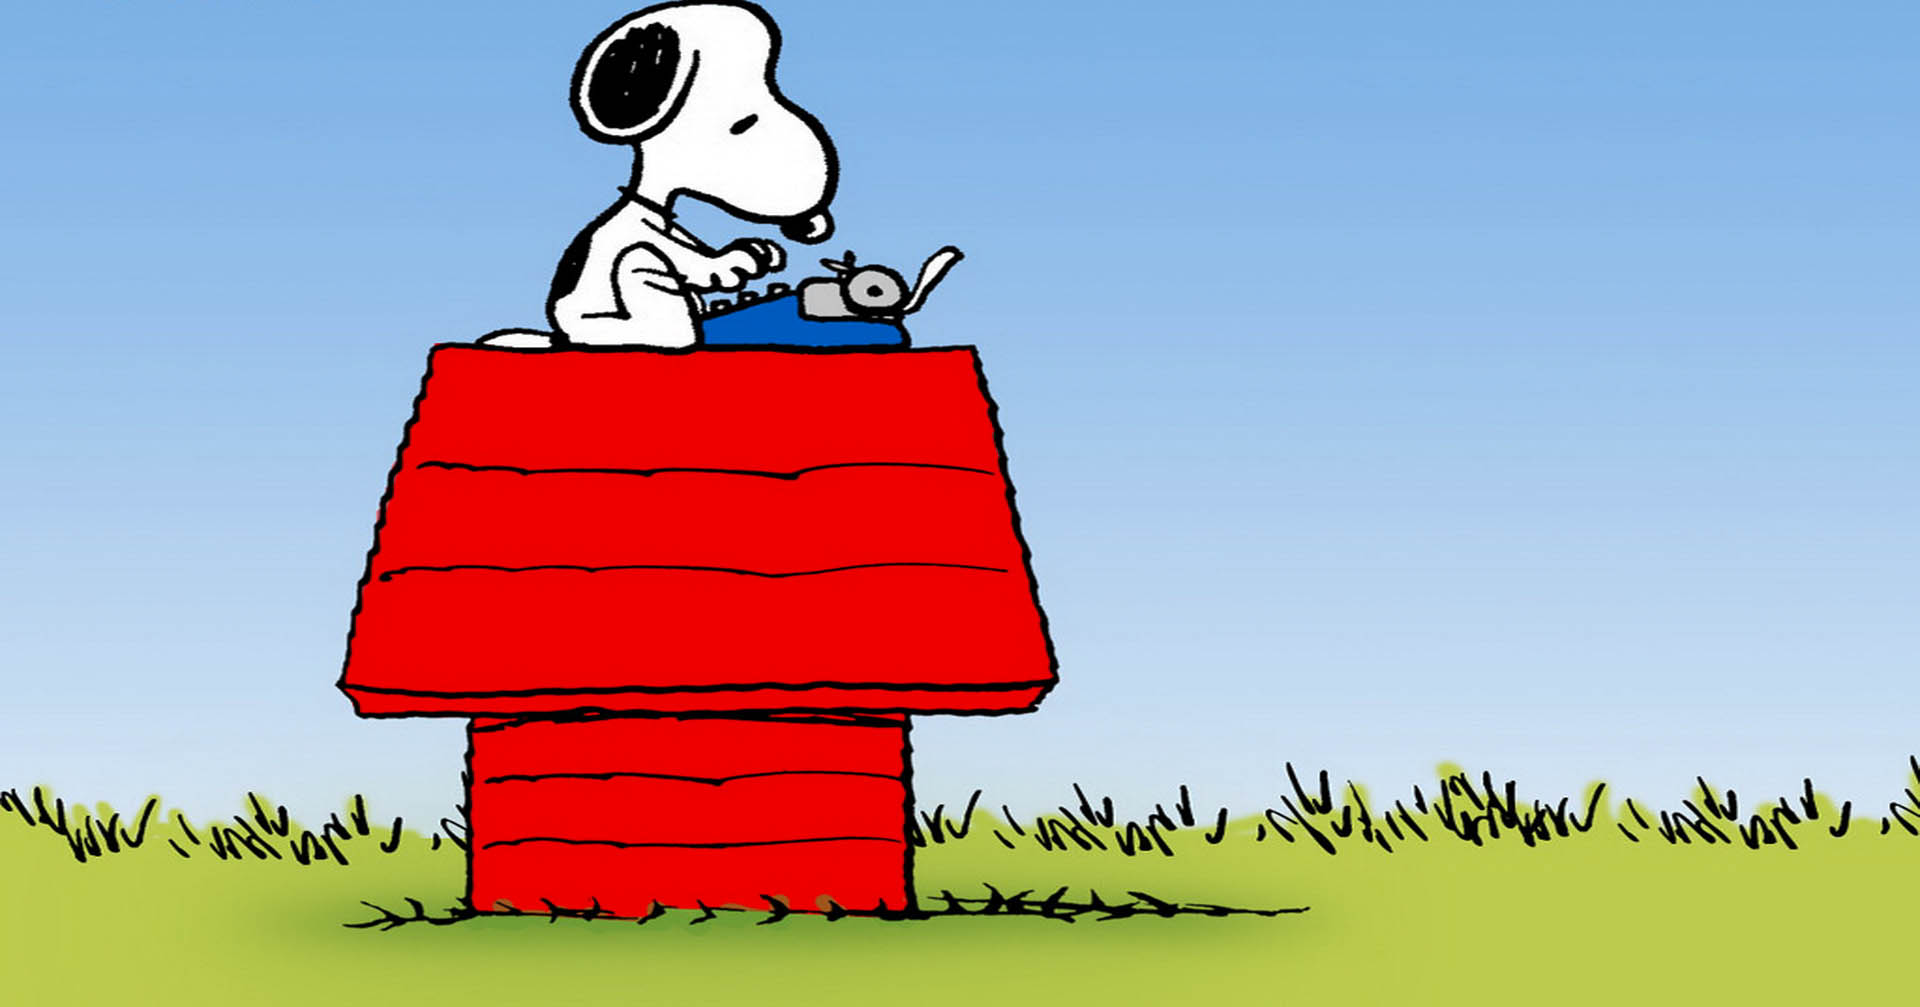 Snoopy High Definition Backgrounds And Wallpapers - All HD ...